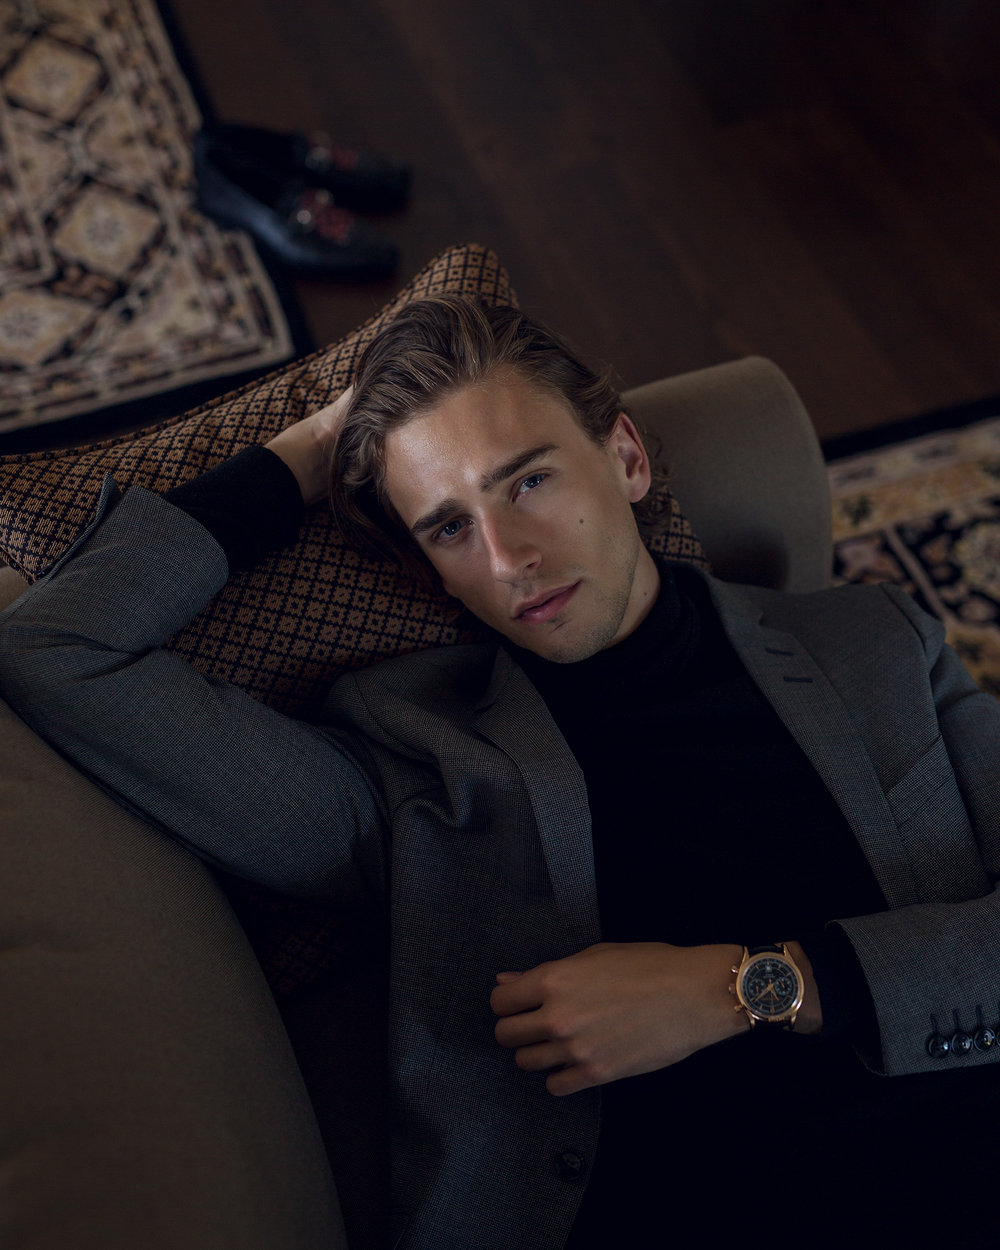 Oliver is wearing the Carl F. Bucherer Manero Flyback Chronograph in black.